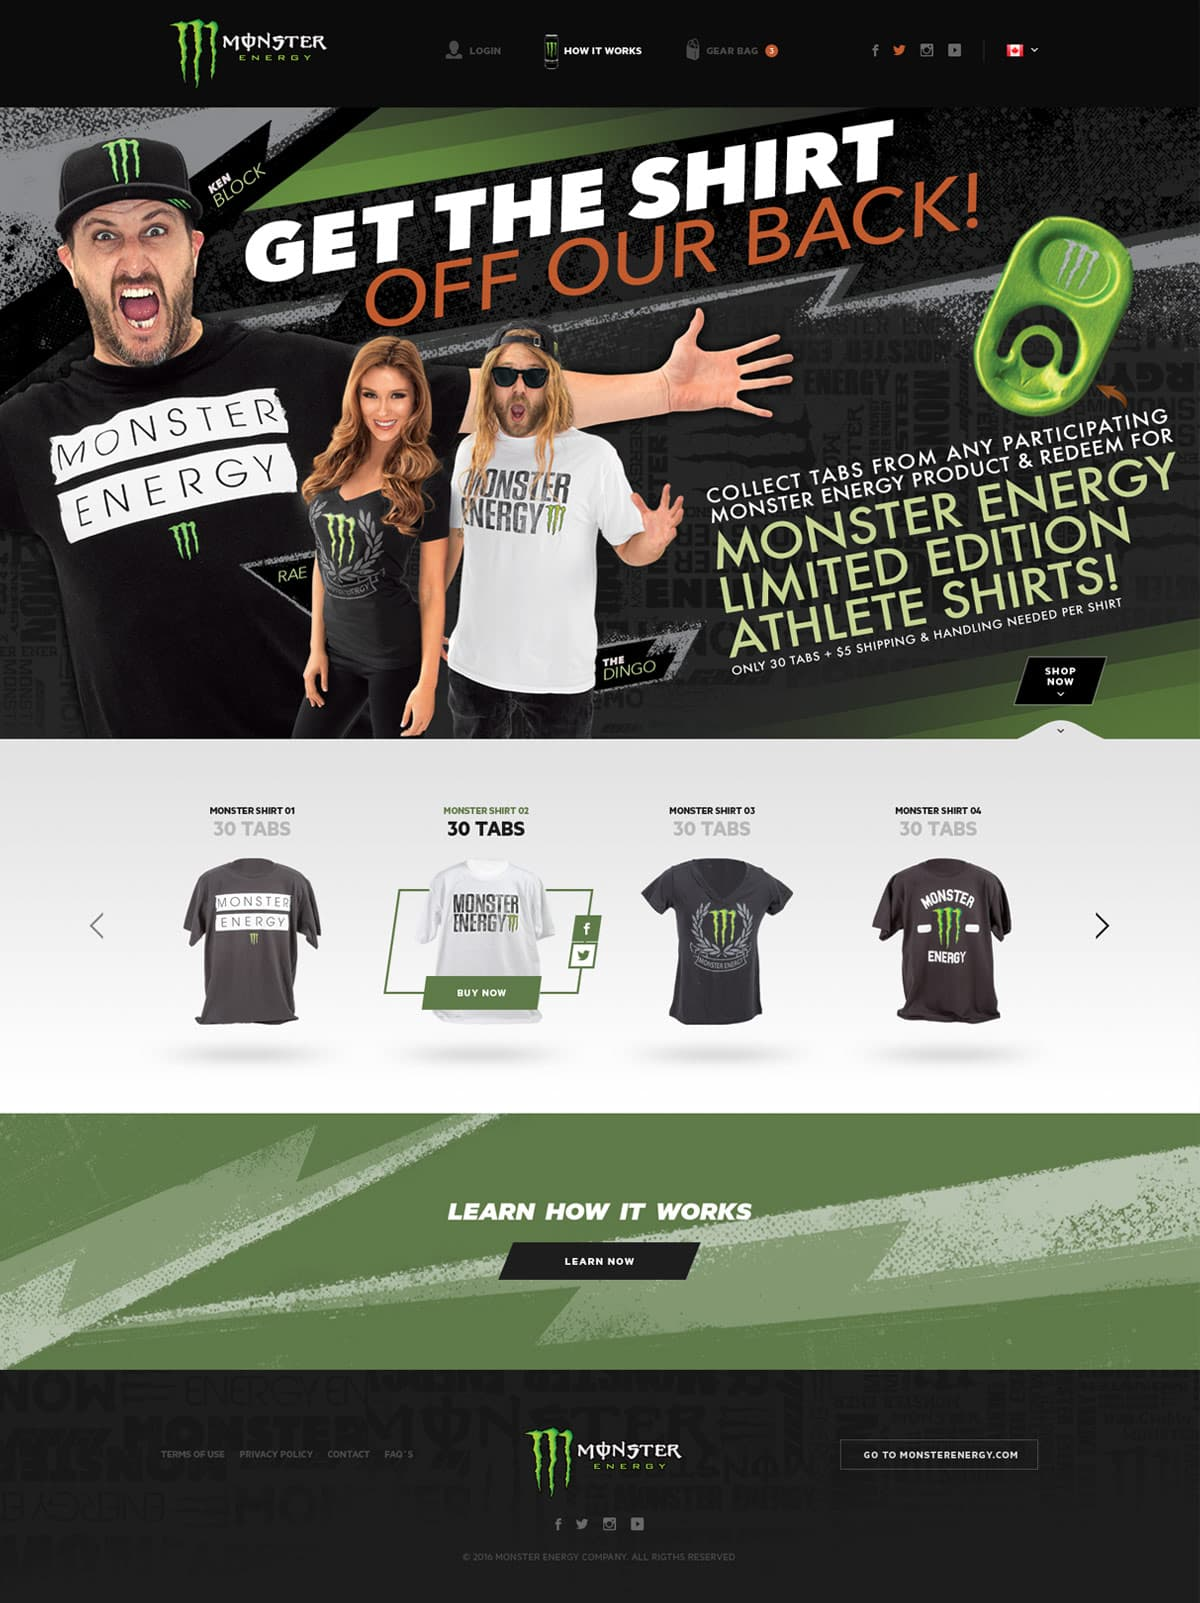 Monster Energy, Ekko Media web design, video production and marketing